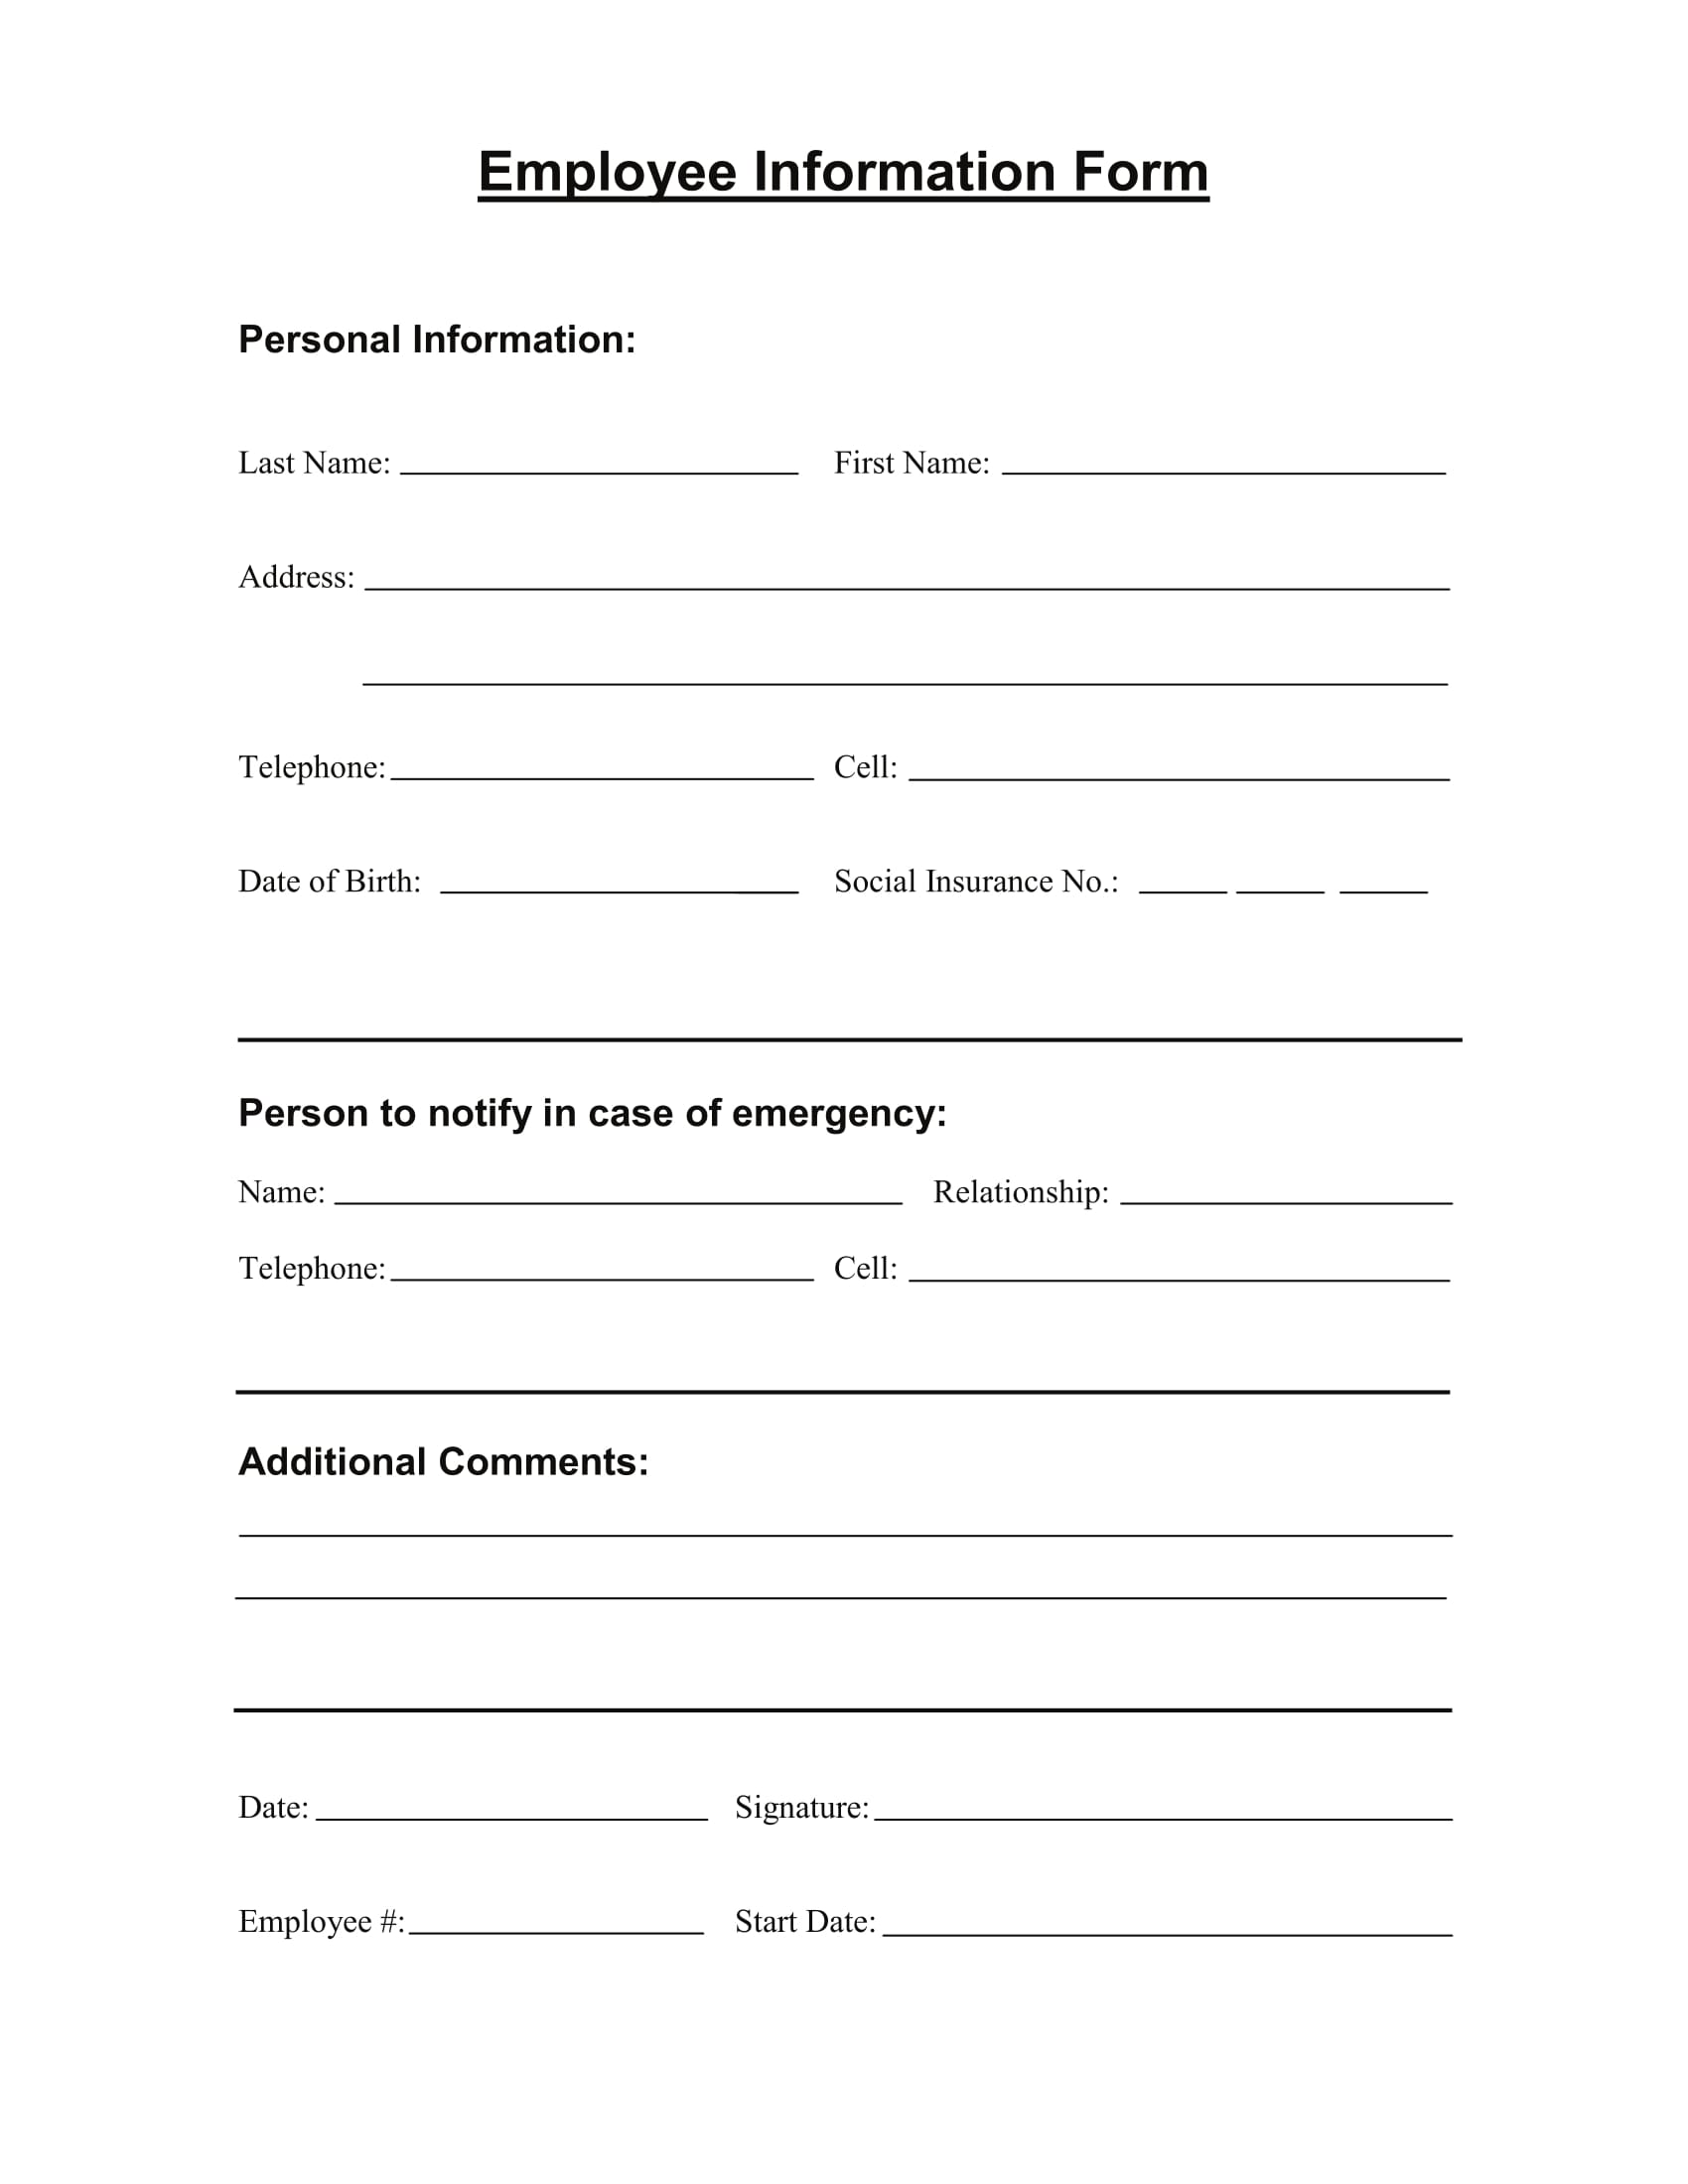 Delightful Employee Information Form Sample 1 Inside Employee Information Form Sample